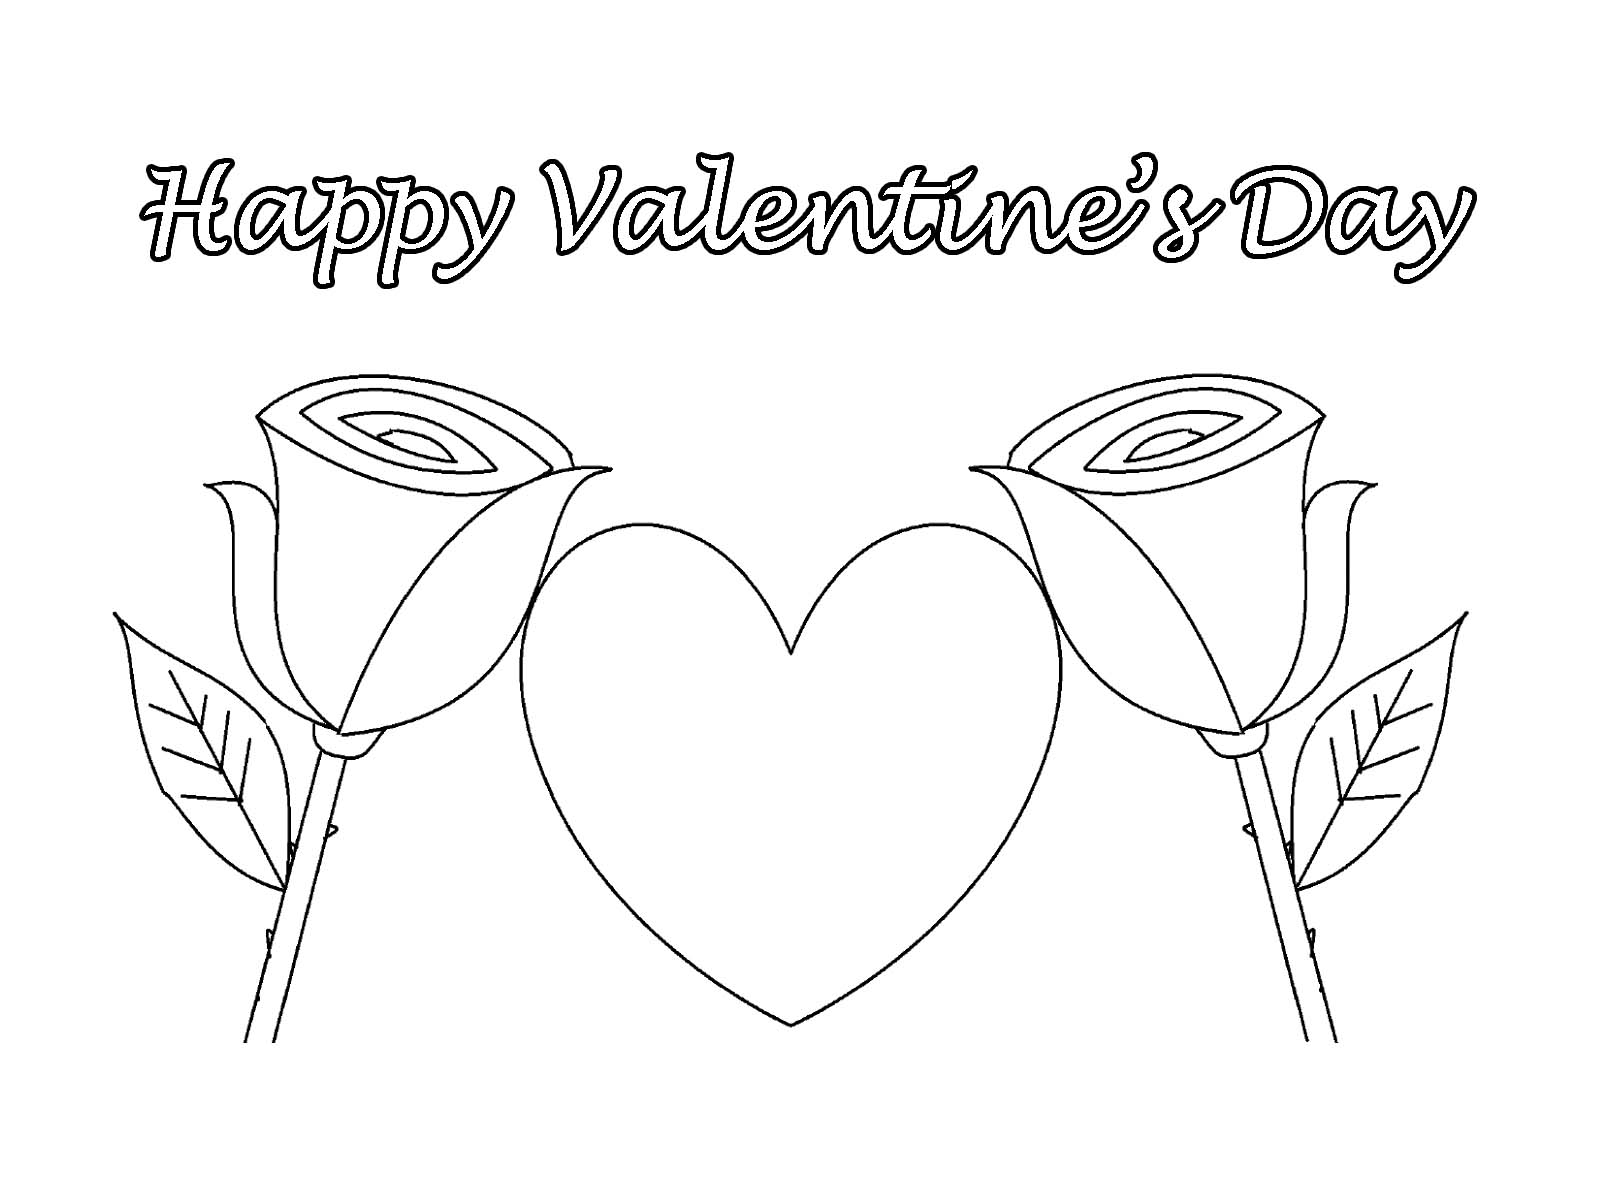 Happy Valentines Day Coloring Pages Best Coloring Pages For Kids